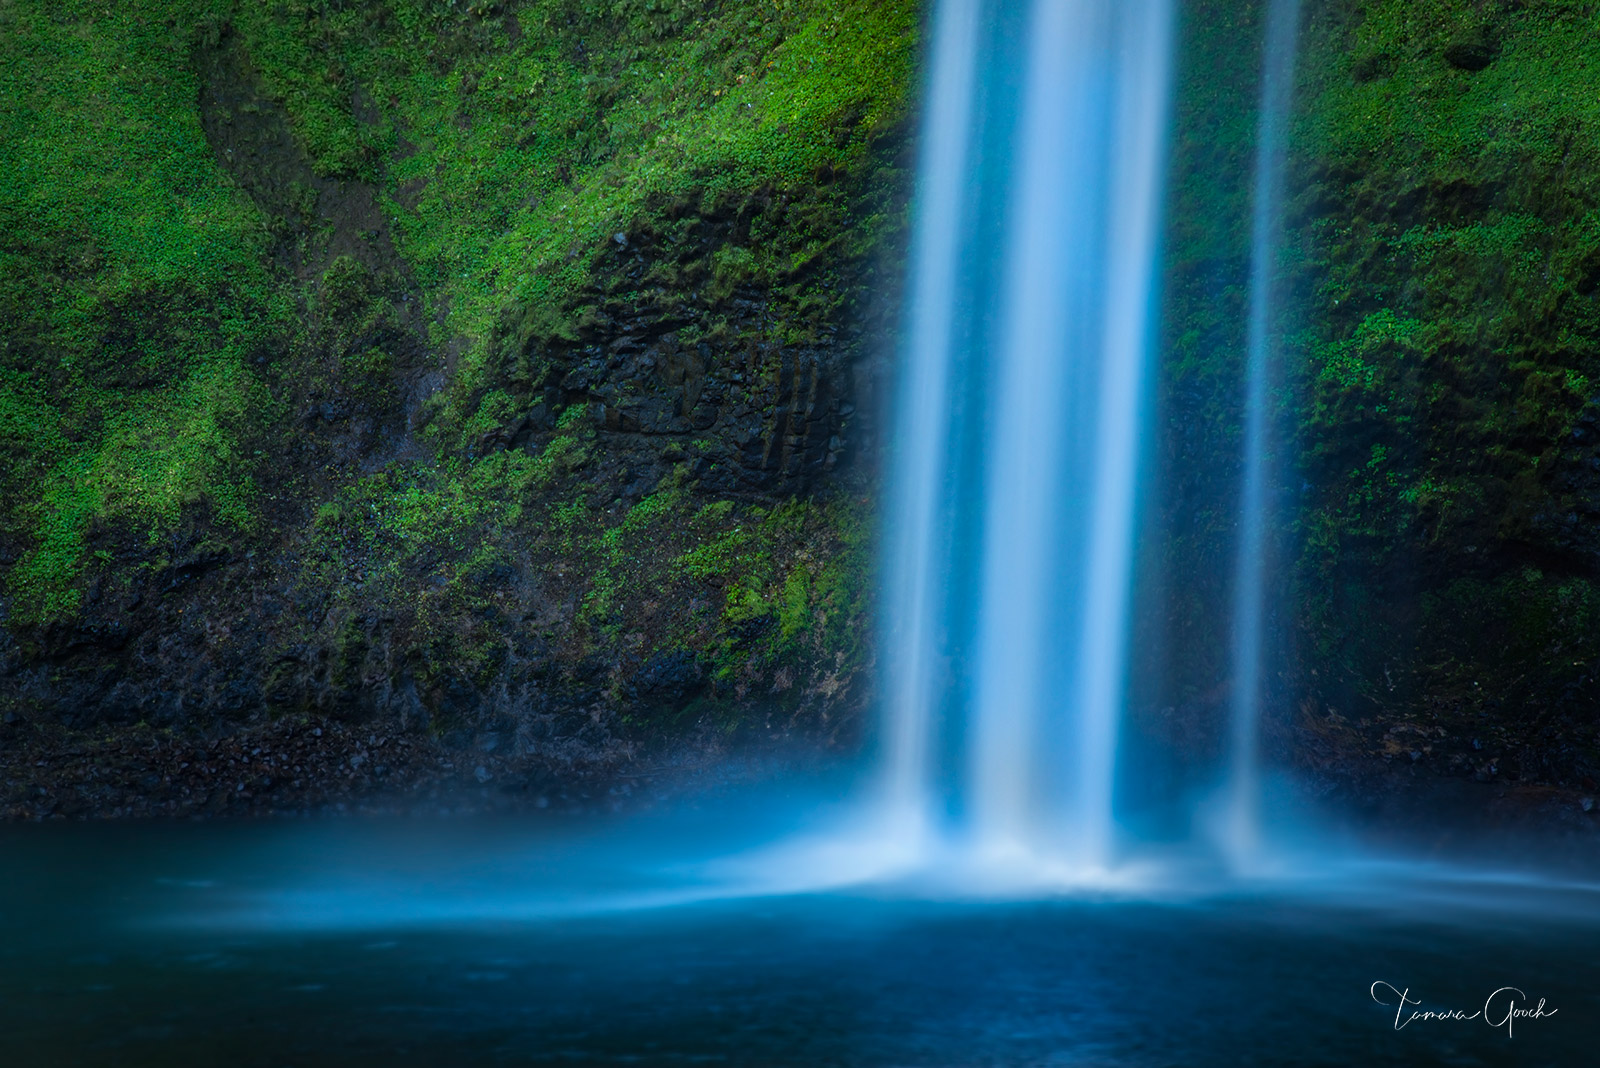 water, waterfall, pool, river, greenery, plants, moss, northwest, Oregon, image, images, photo, photos, photograph, photographs, photography, picture, pictures, print, prints, fine art, limited editio, photo